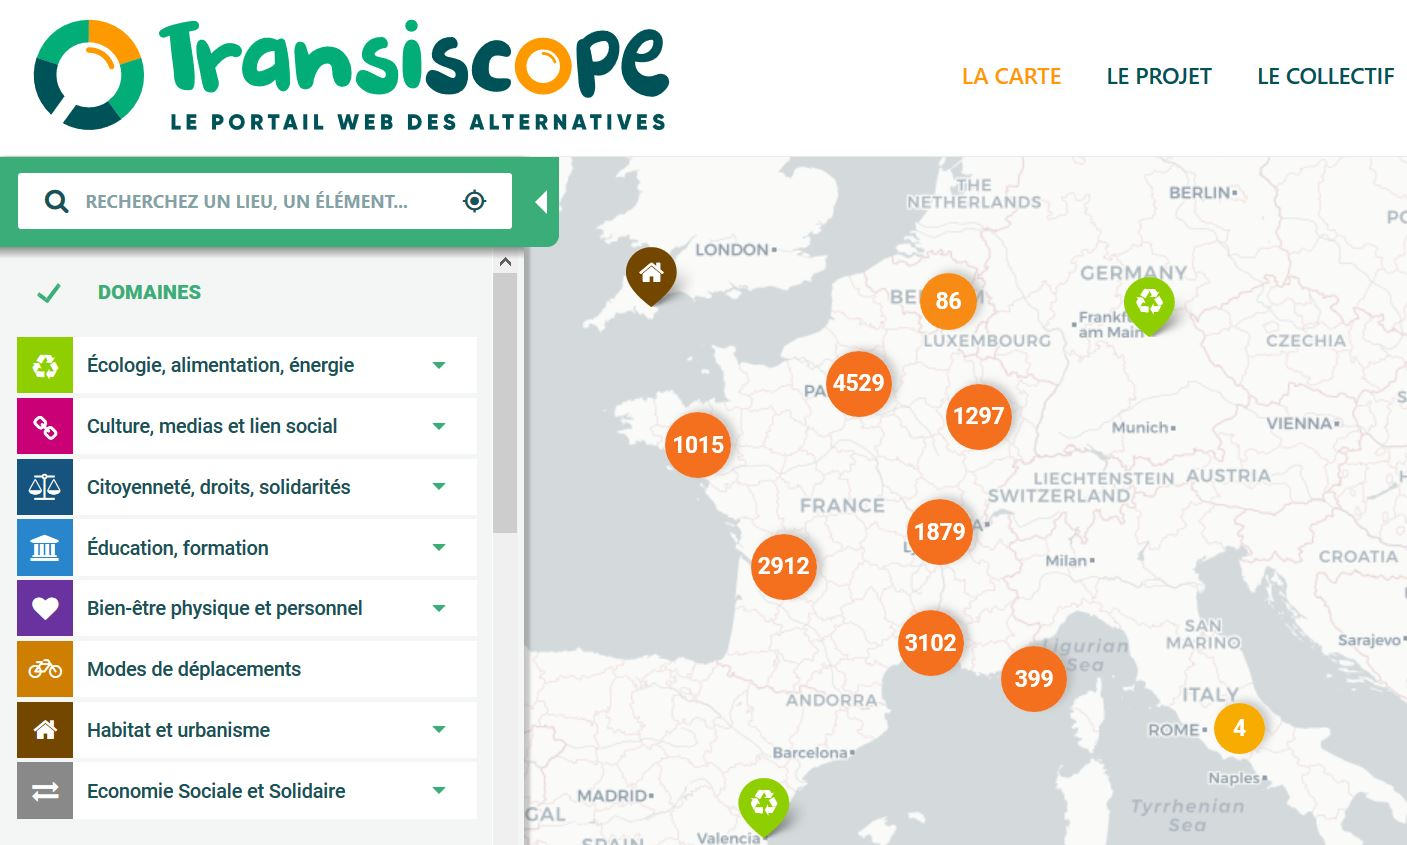 Transiscope recensement et cartographie des alternatives